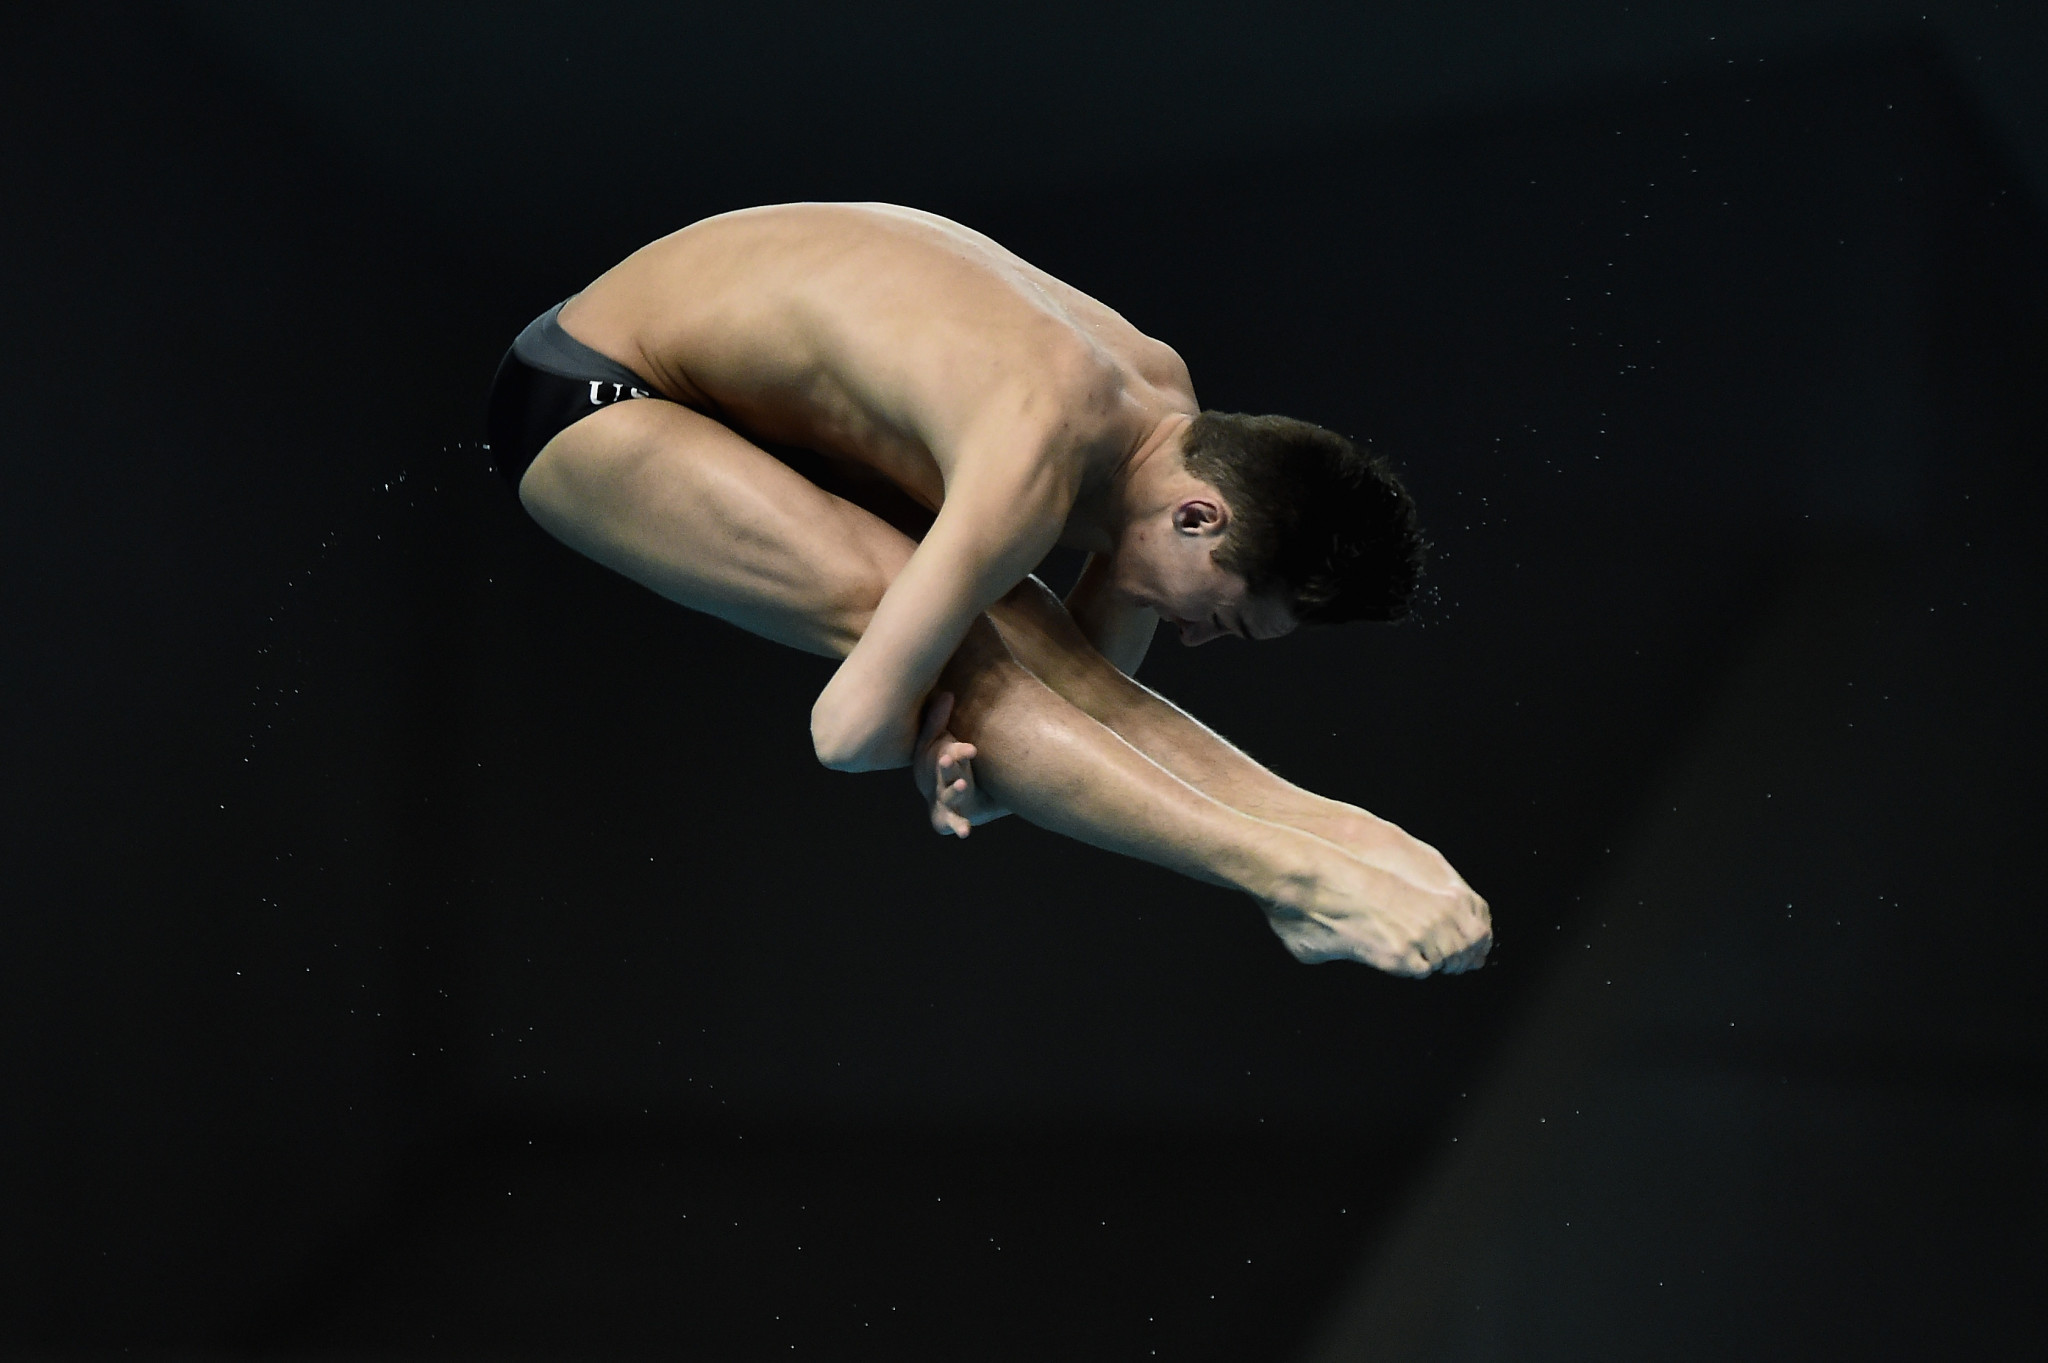 Steps could be taken to remove USA Diving's status as the official Olympic governing body for the sport ©Getty Images